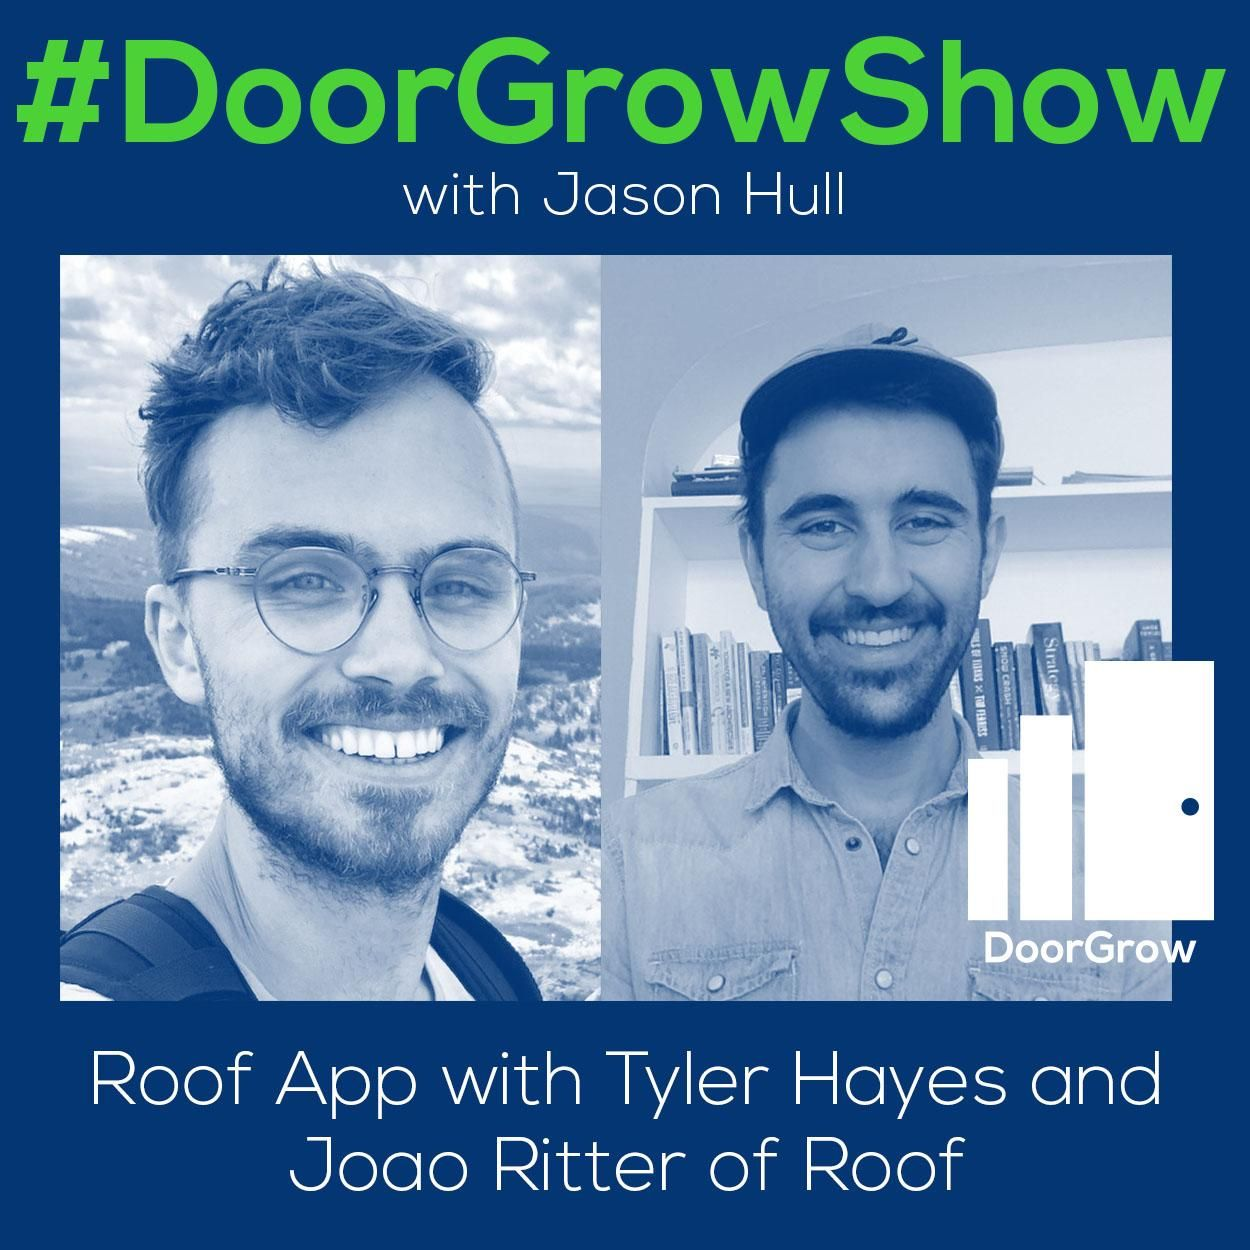 Dgs 84 roof app with tyler hayes and joao ritter being